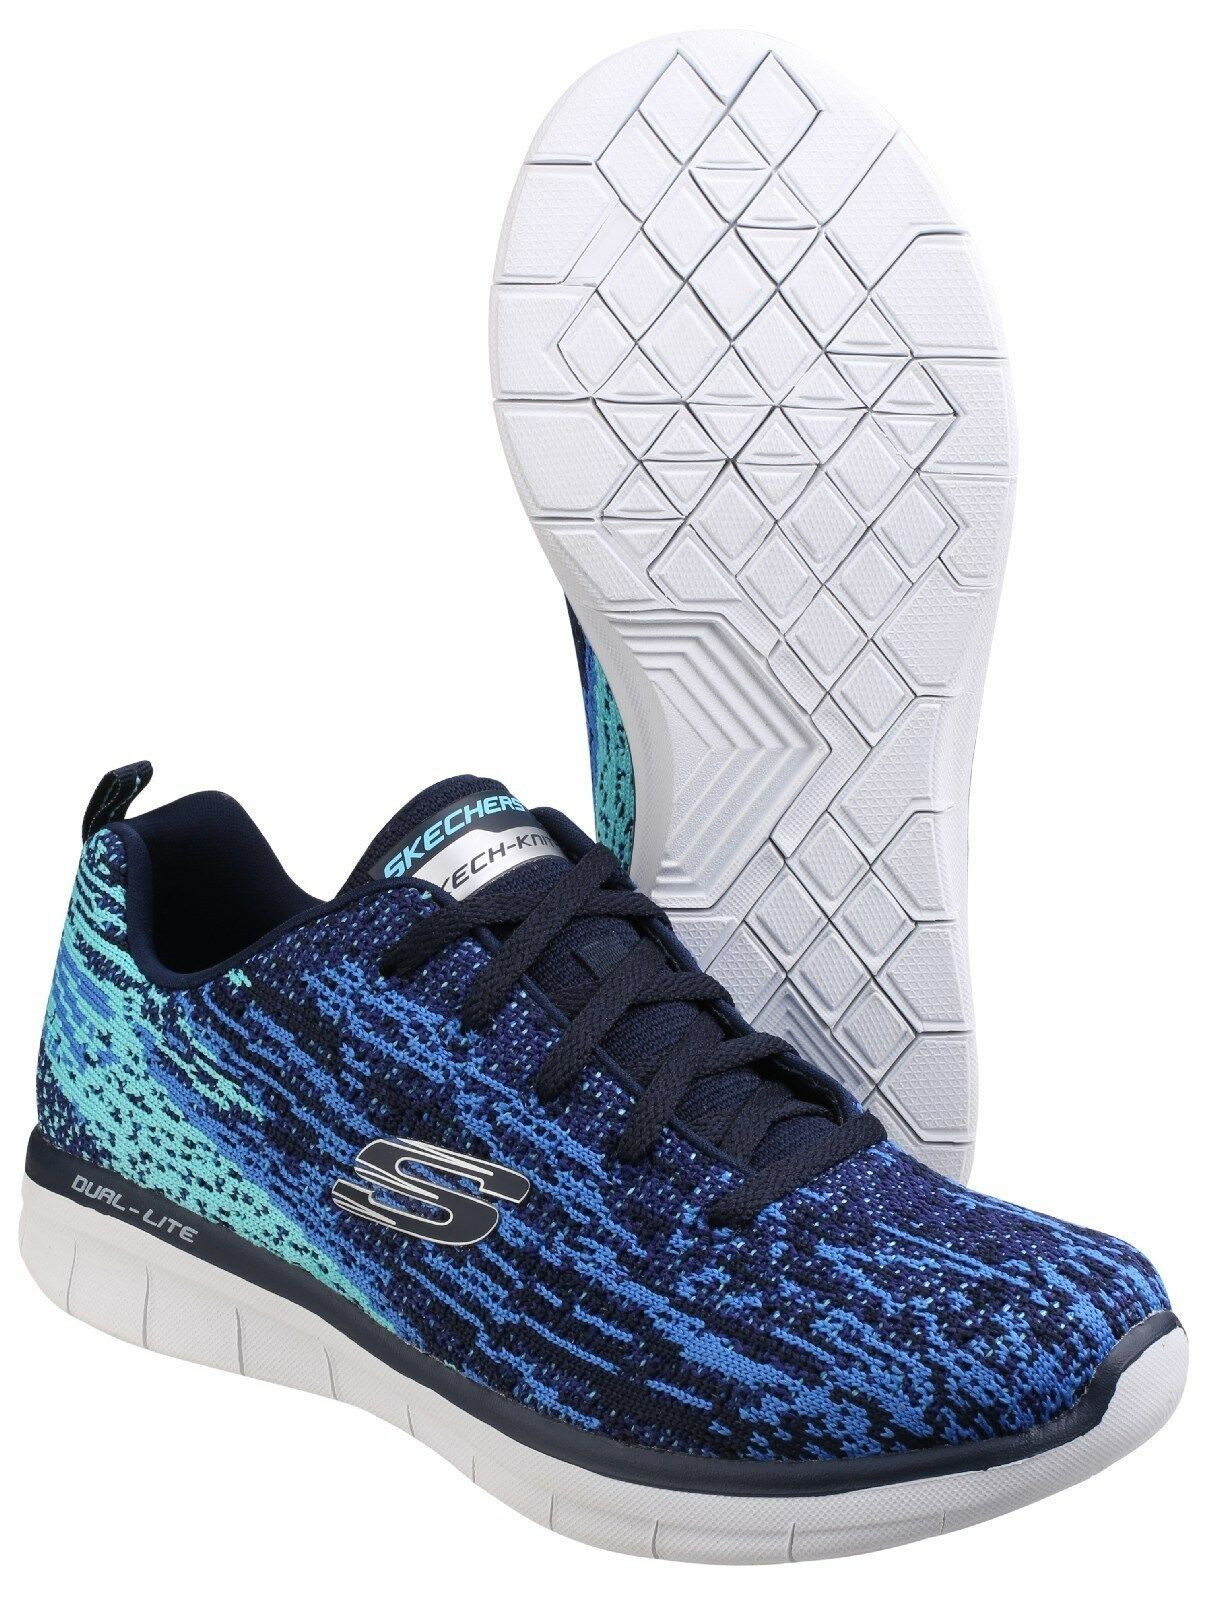 Skechers Synergy 2.0 2.0 Synergy High Spirits Trainers Memory Foam Sports Knit Damenschuhe Schuhes c7138c